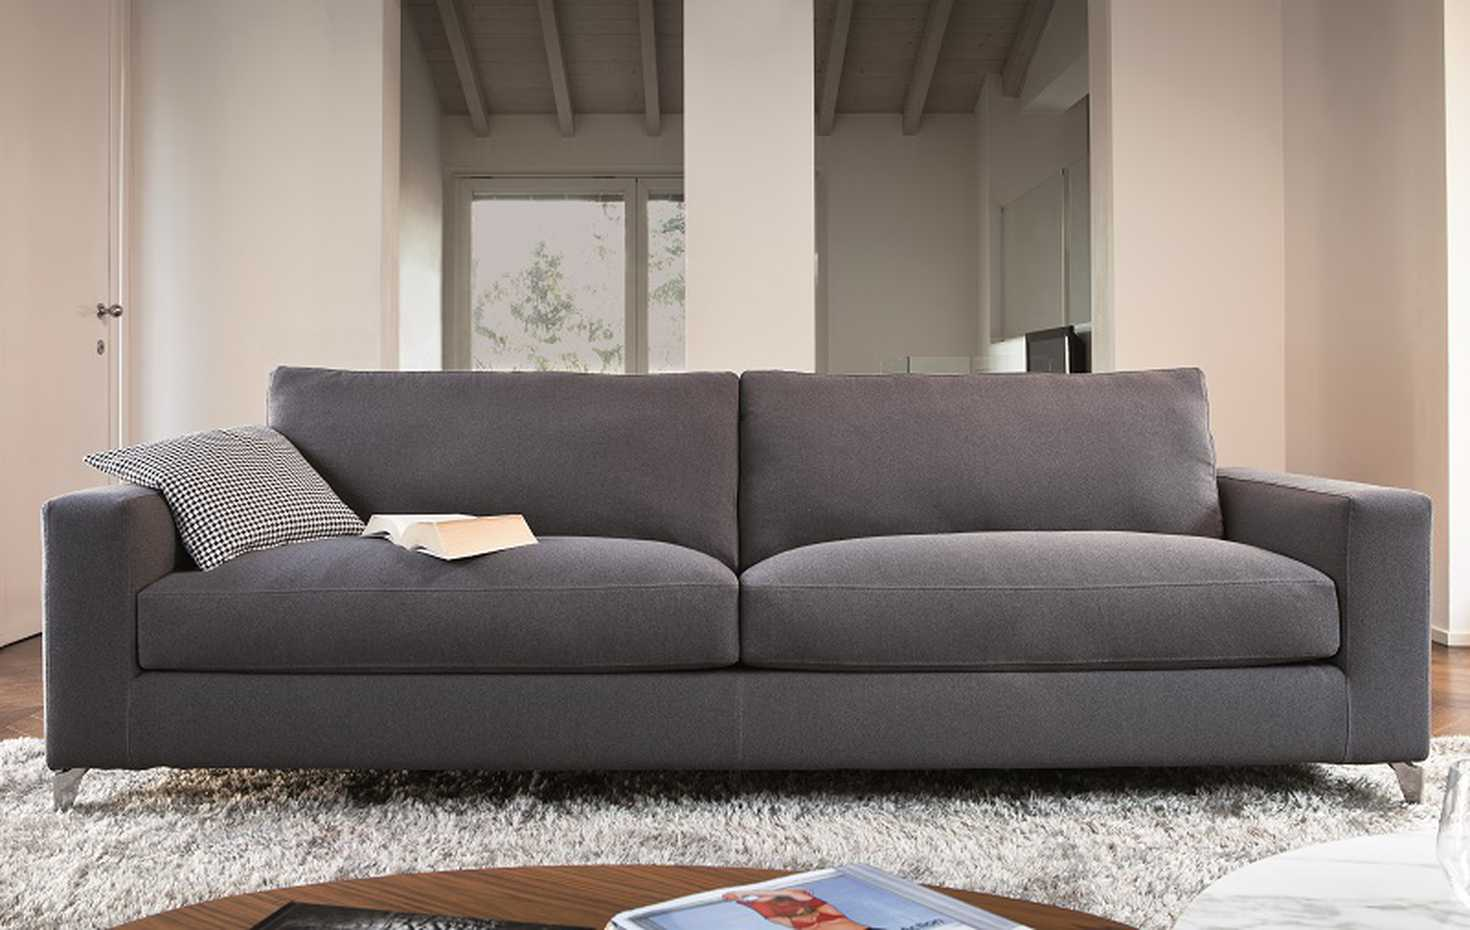 Zone Comfort by Vibieffe product image 3